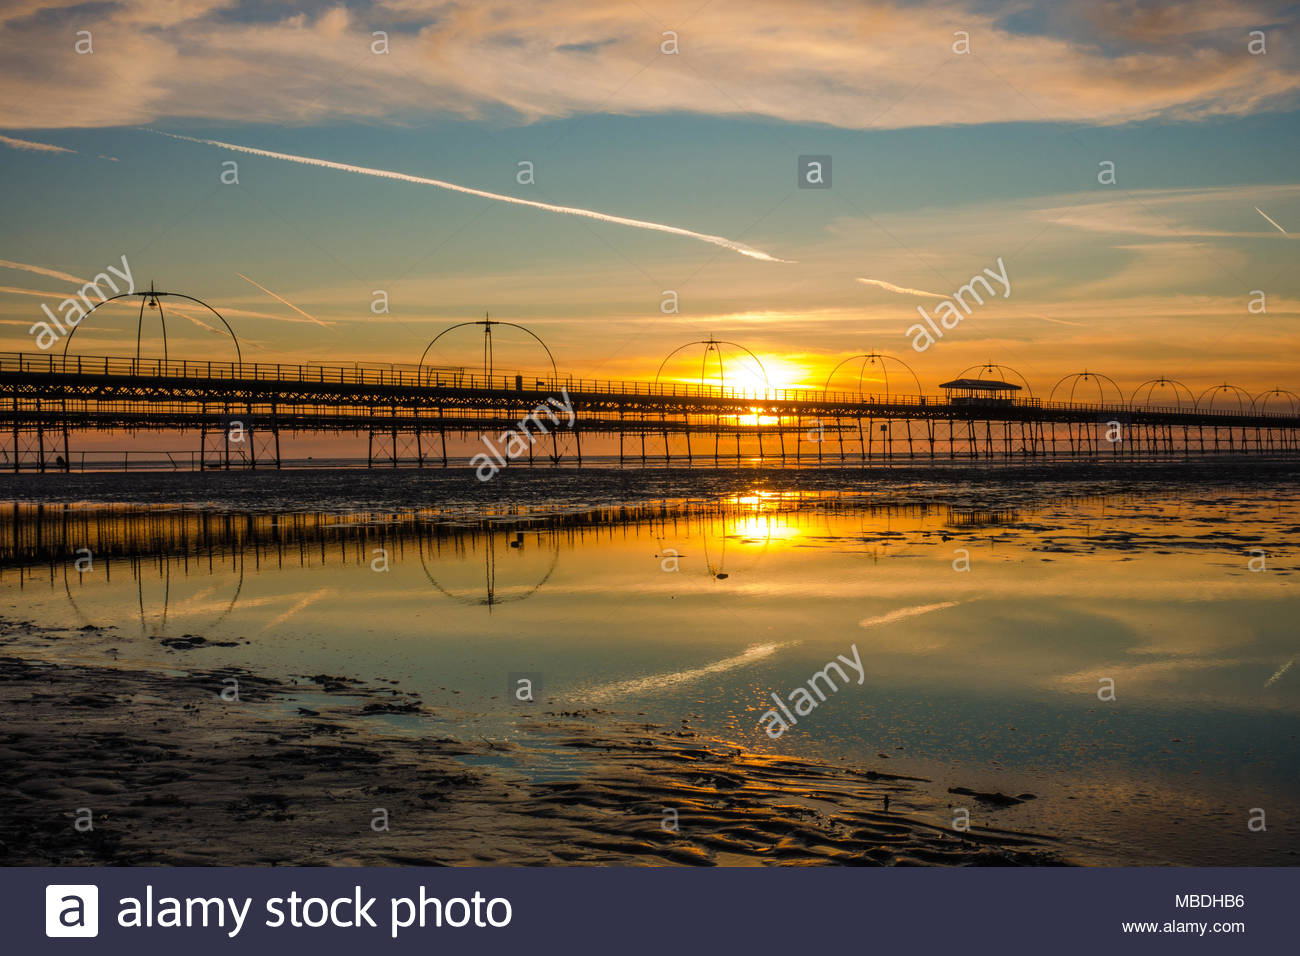 Southport Pier at sunset, showing the meal arches and stays of the bridge at sunset with a jet stream in the sky, which is reflected, England UK Stock Photo